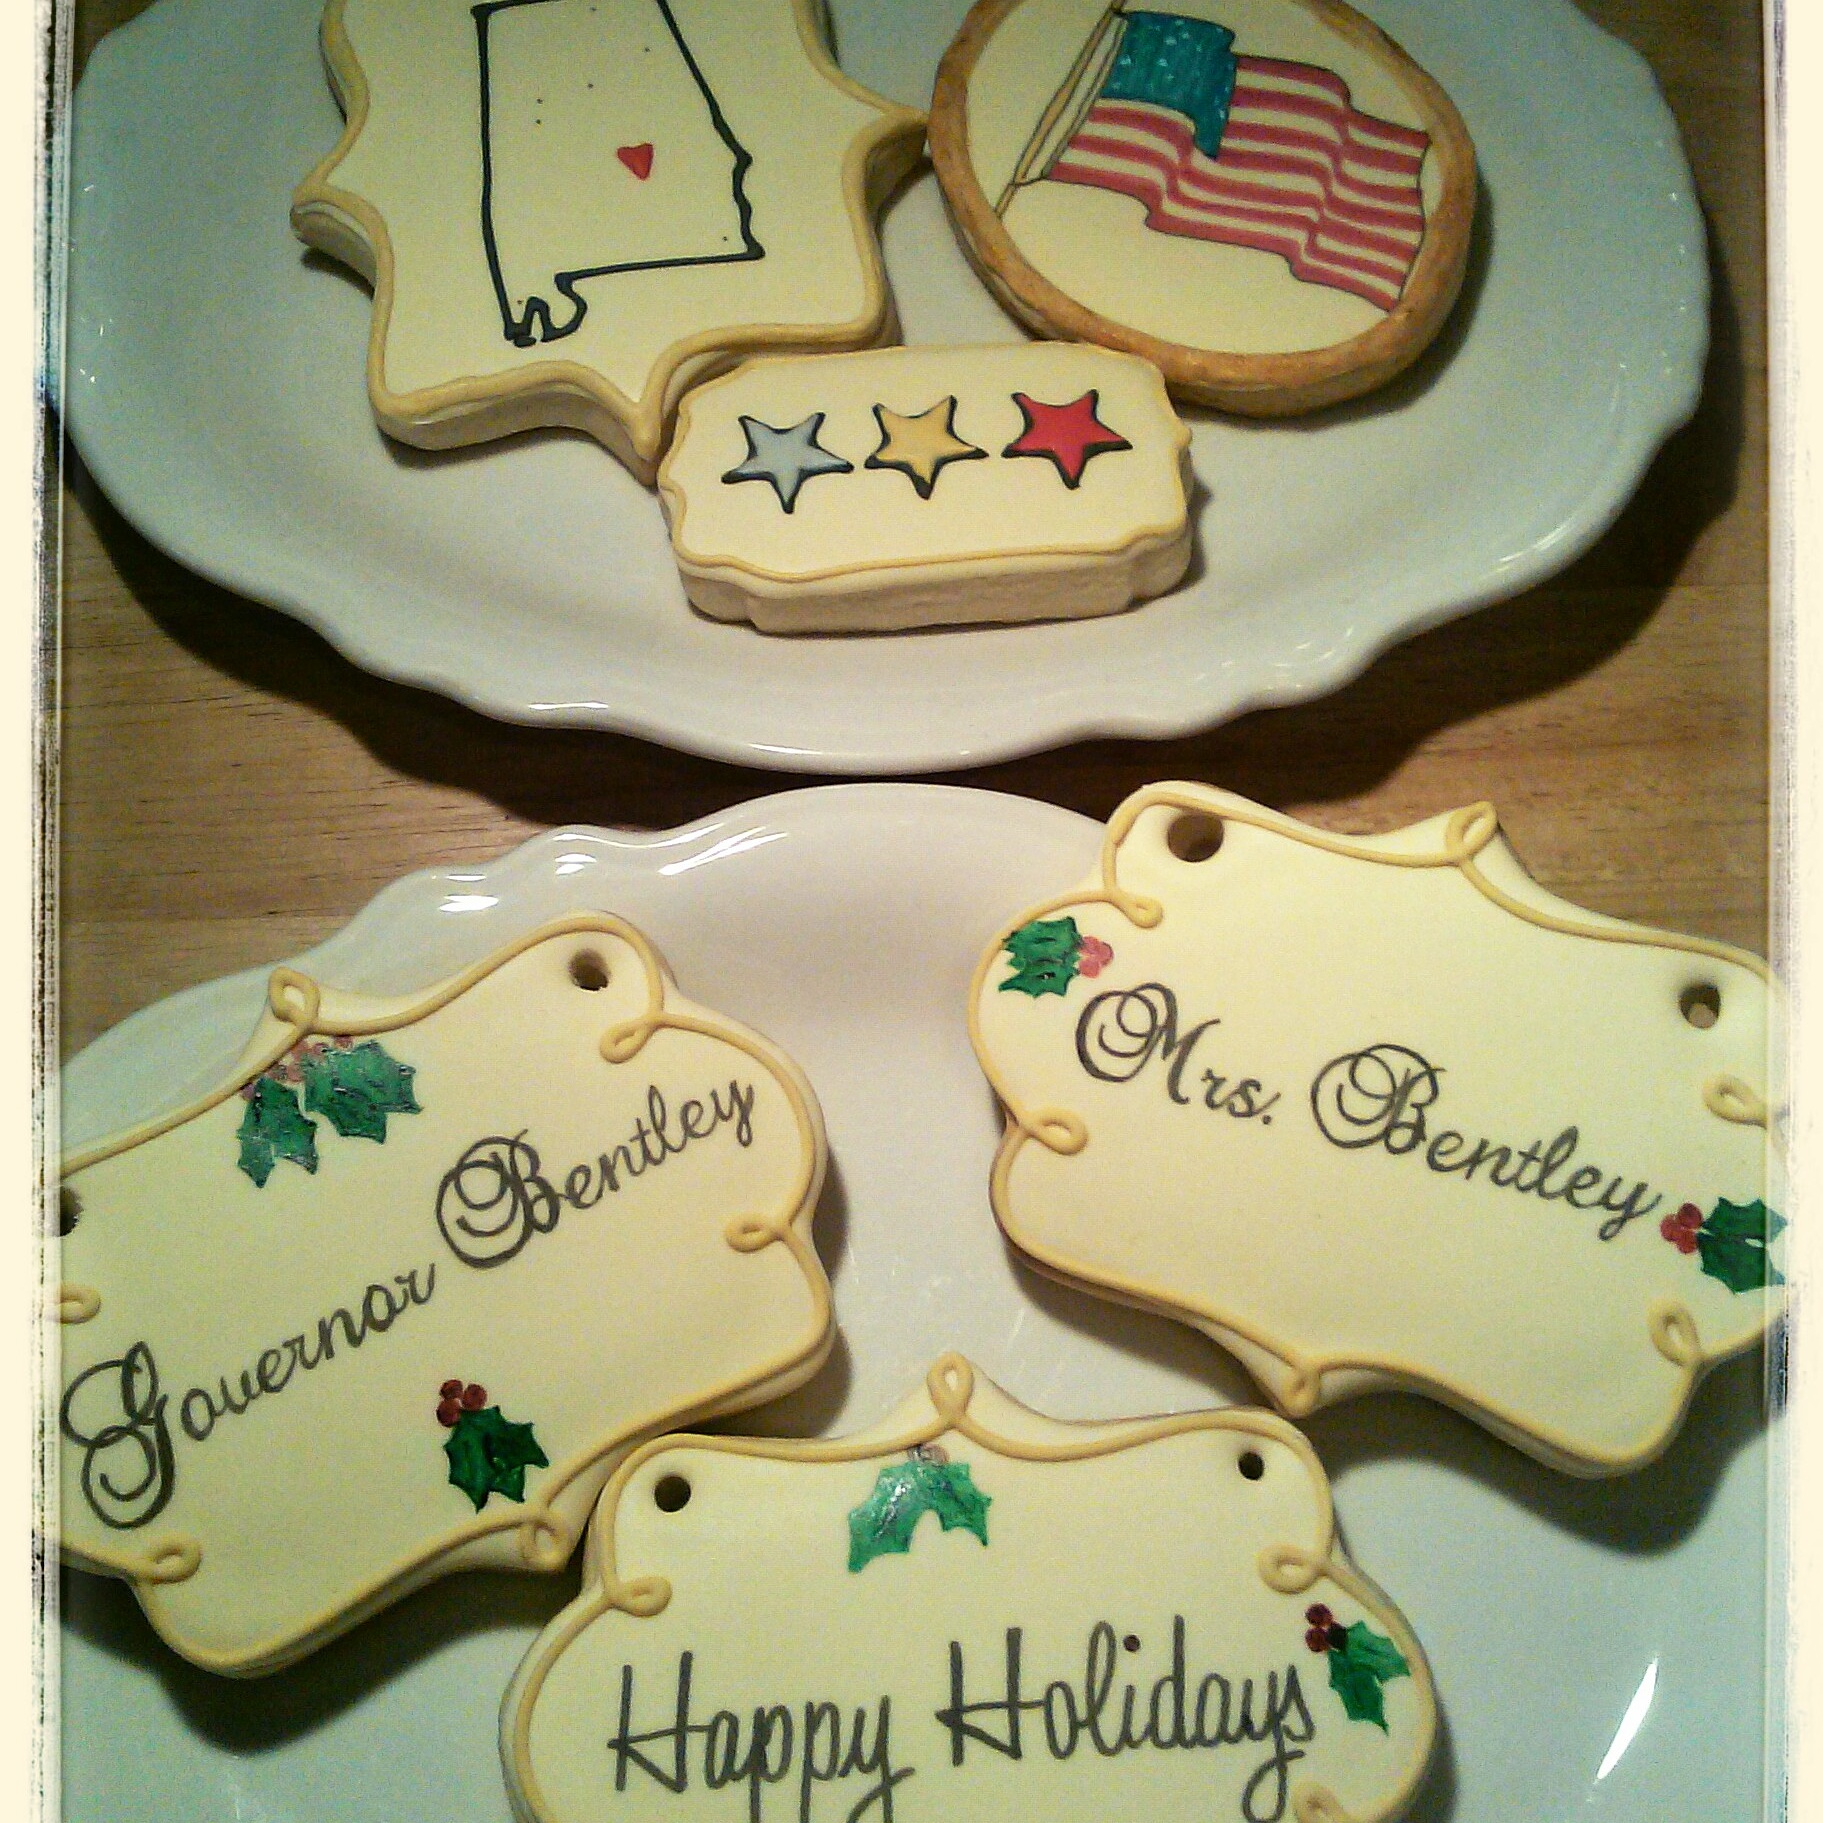 I added the holes on each side of the cookie so that they could be strung with ribbon and kept as keepsakes to hang on their tree. There was a cookie with each of the Governor's children and grandchildren's names as well as the Governor and his wife.